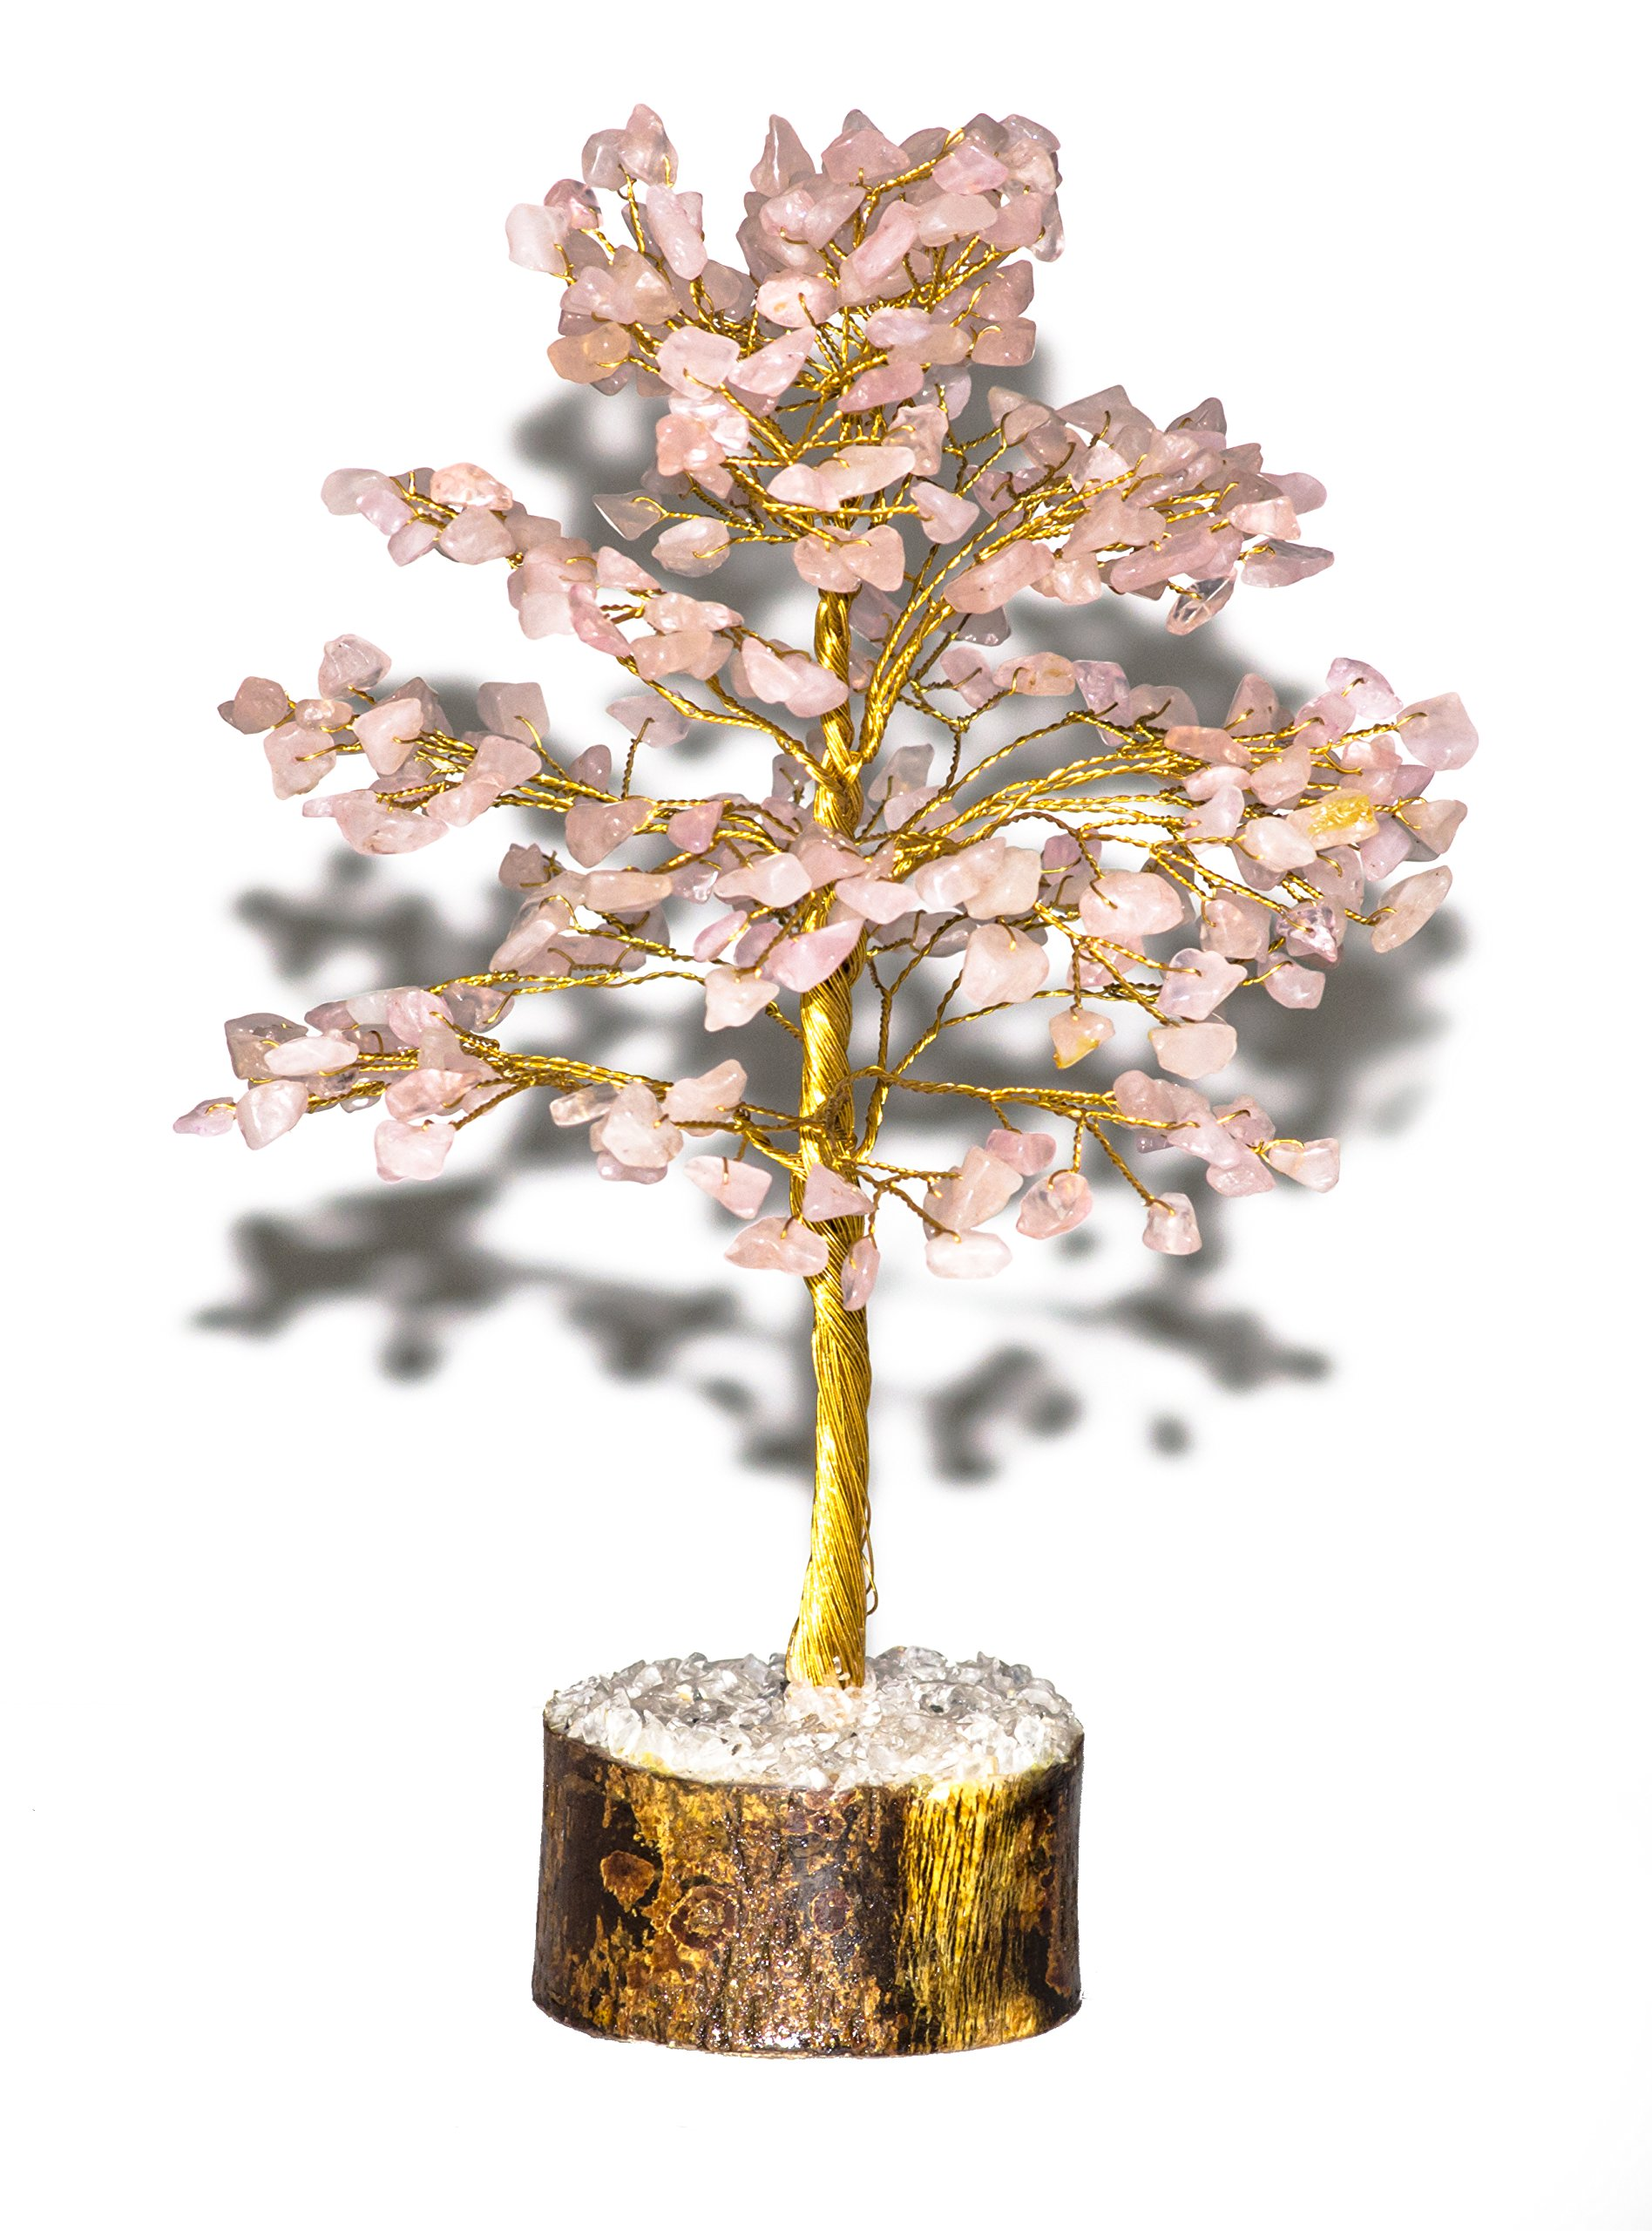 Crocon Natural Color Healing Gemstone Crystal Bonsai Fortune Money Tree for Good Luck, Wealth & Prosperity Spiritual Gift Size-10 INCH (Golden Wire) (Rose Quartz)